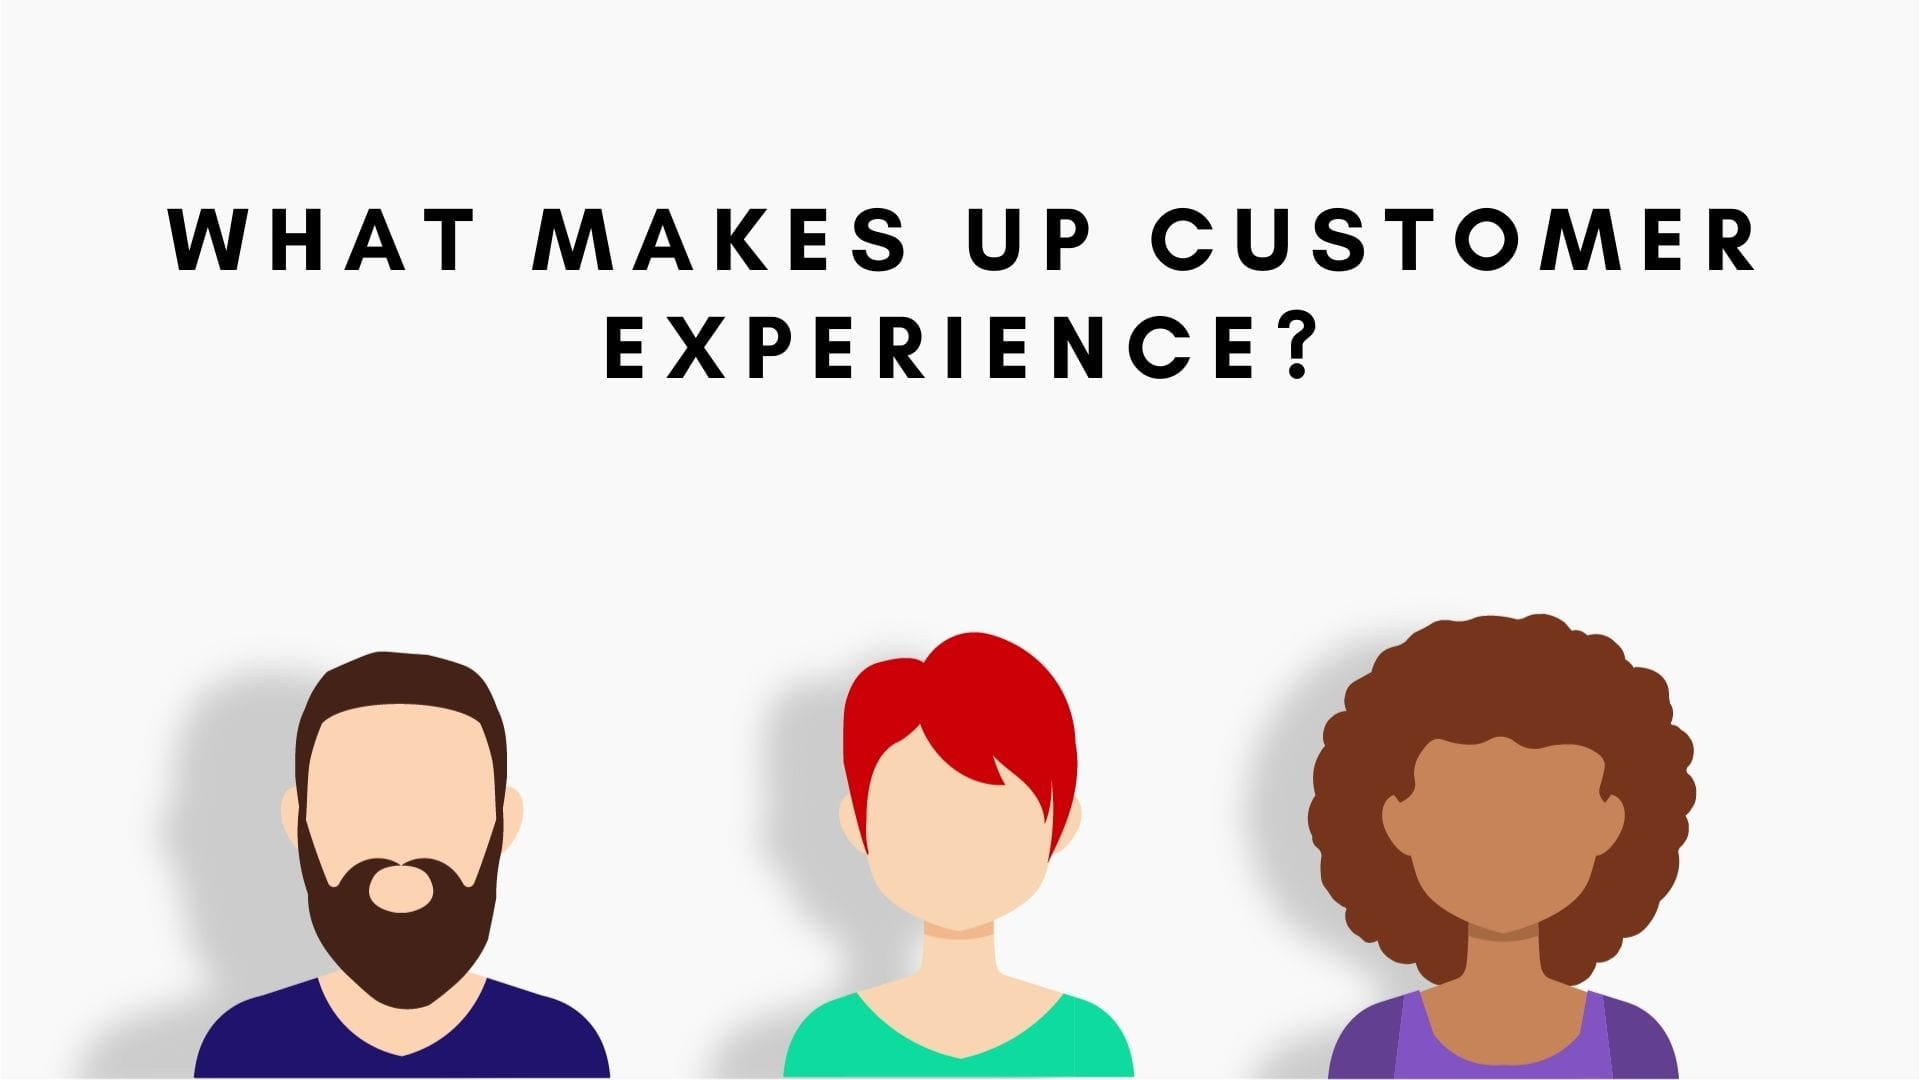 What Makes Up Customer Experience?